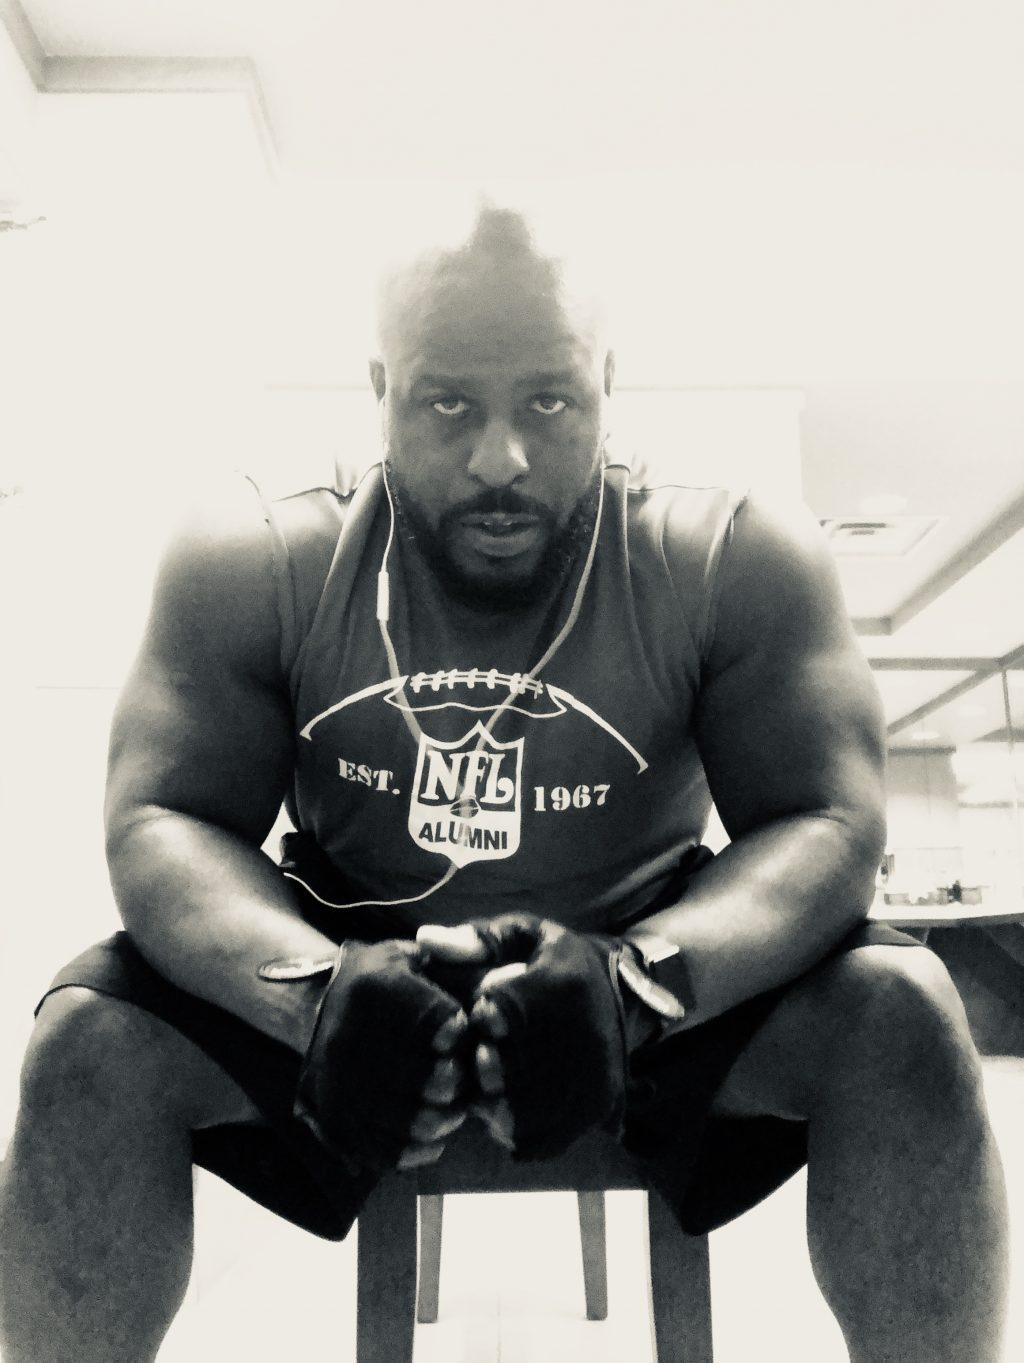 Personal Trainer Denver, Colorado - Delvin H